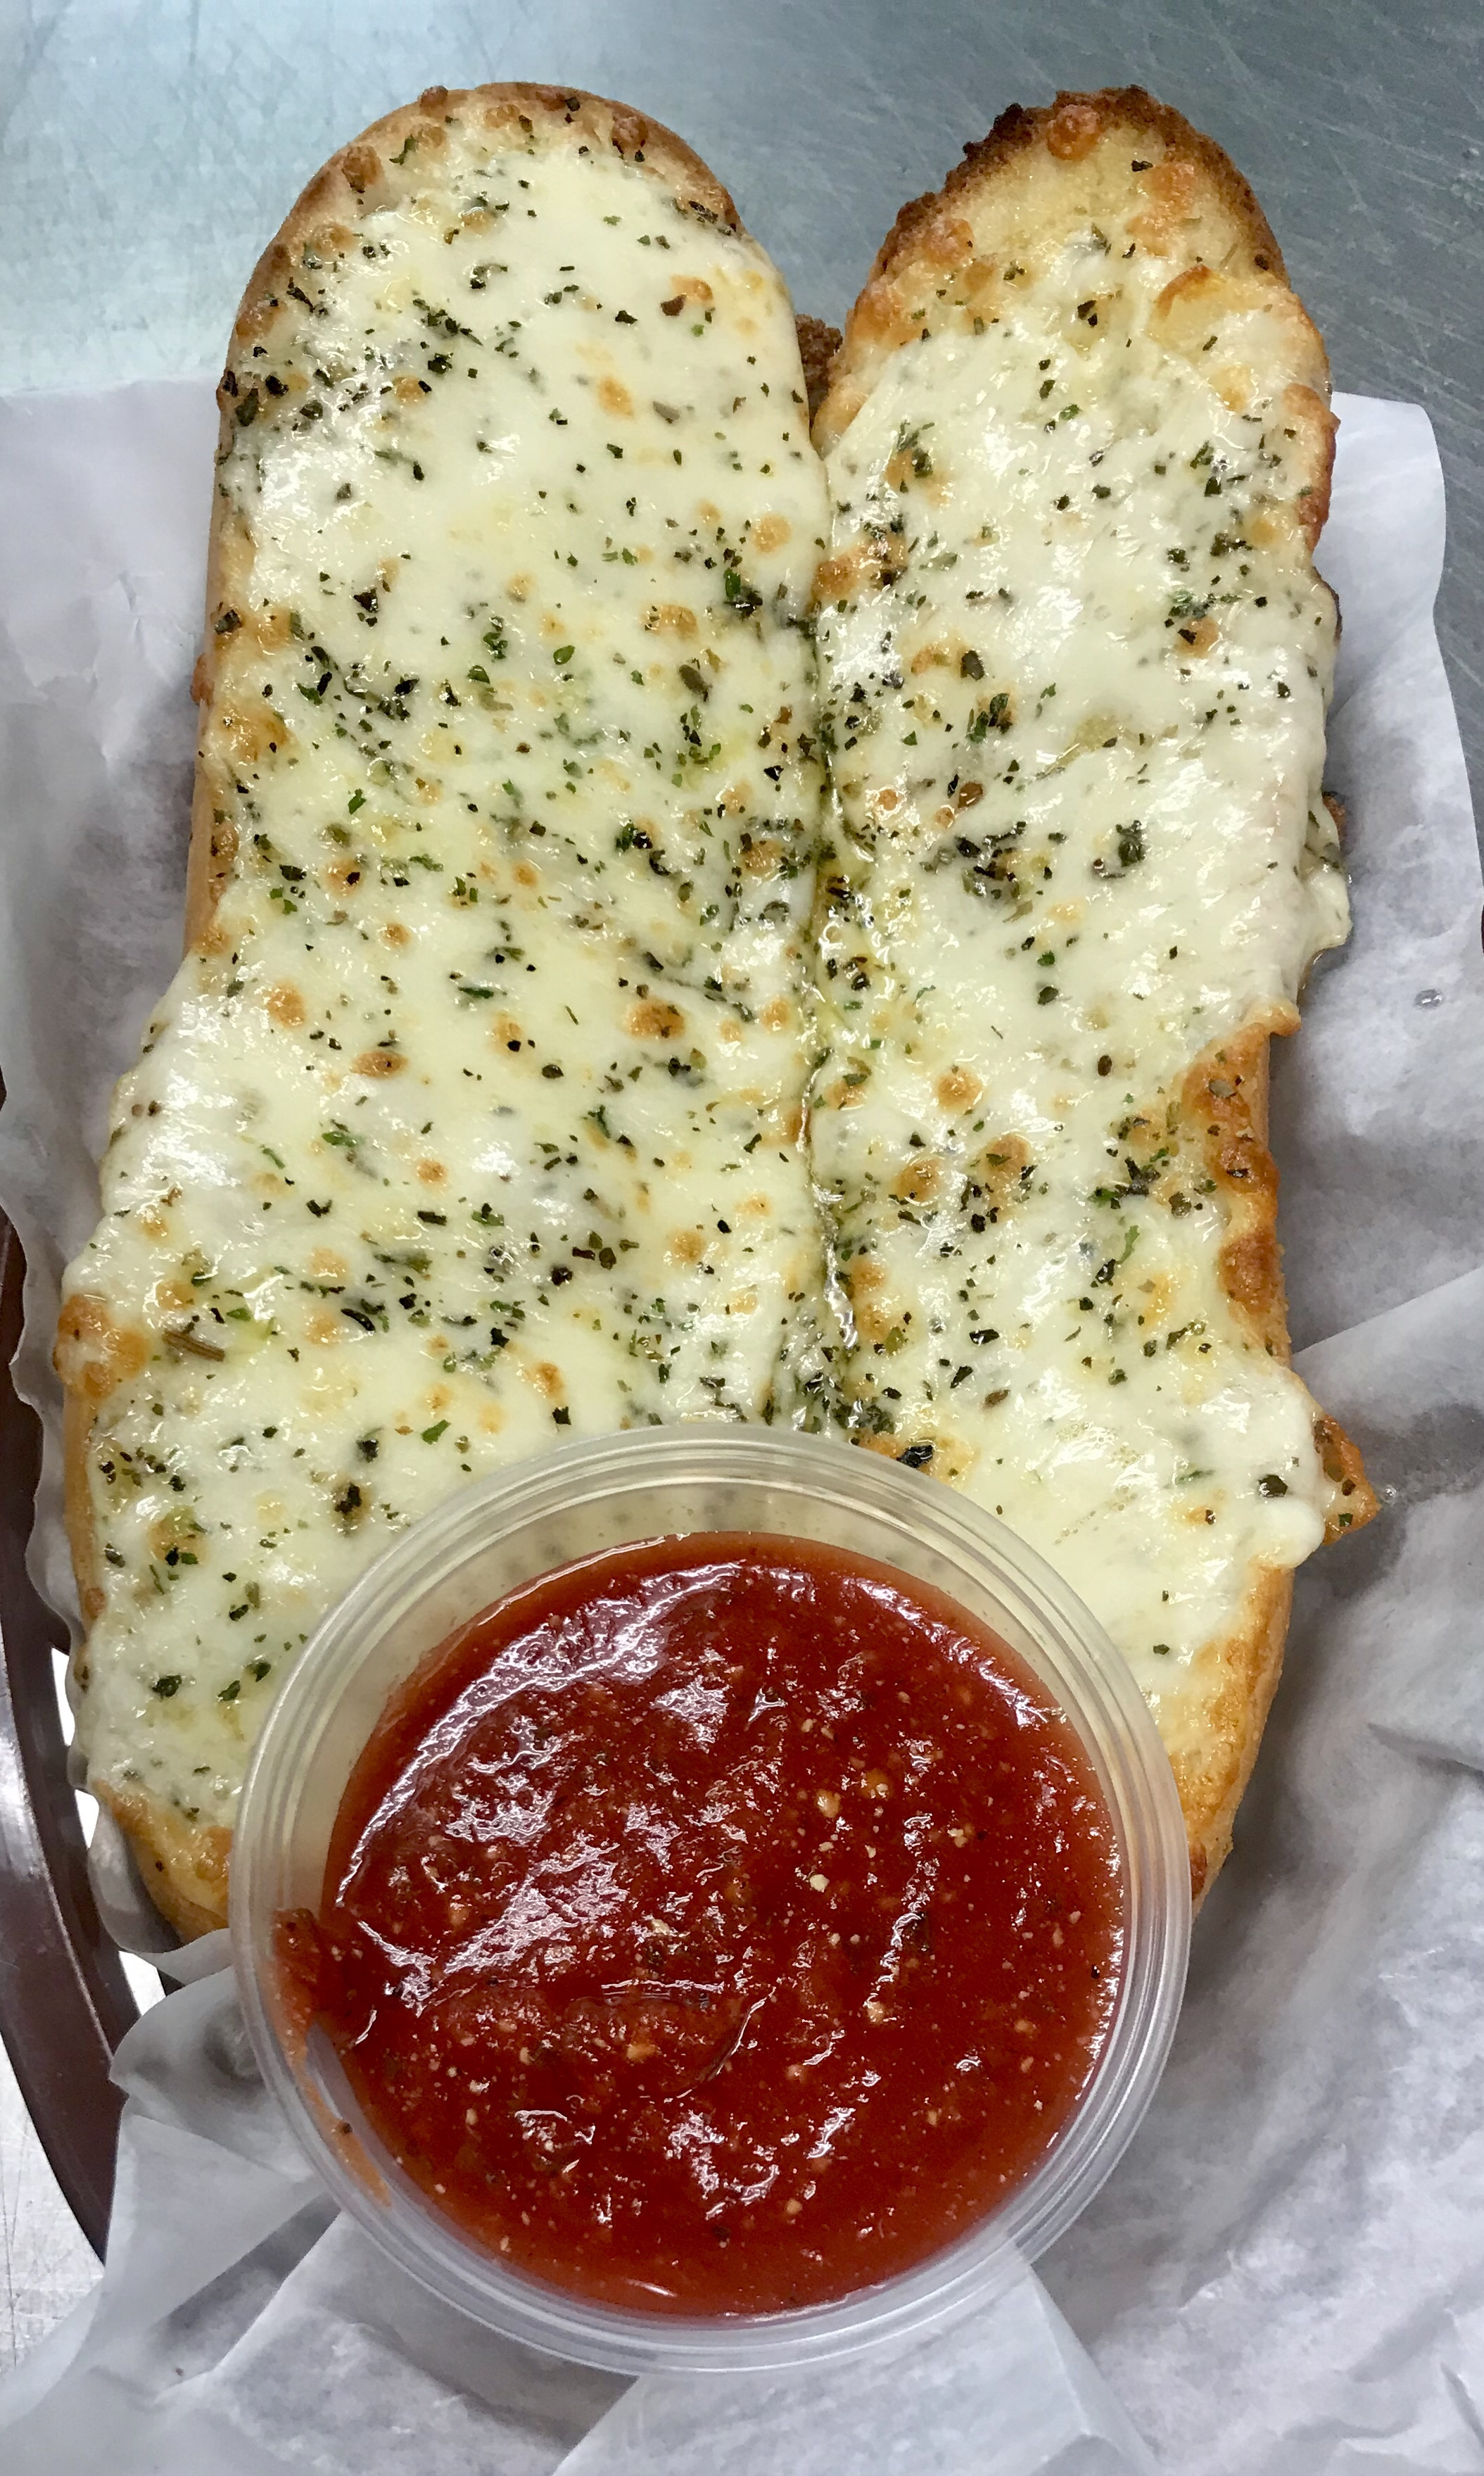 Cheezy Gluten Free Garlic Bread